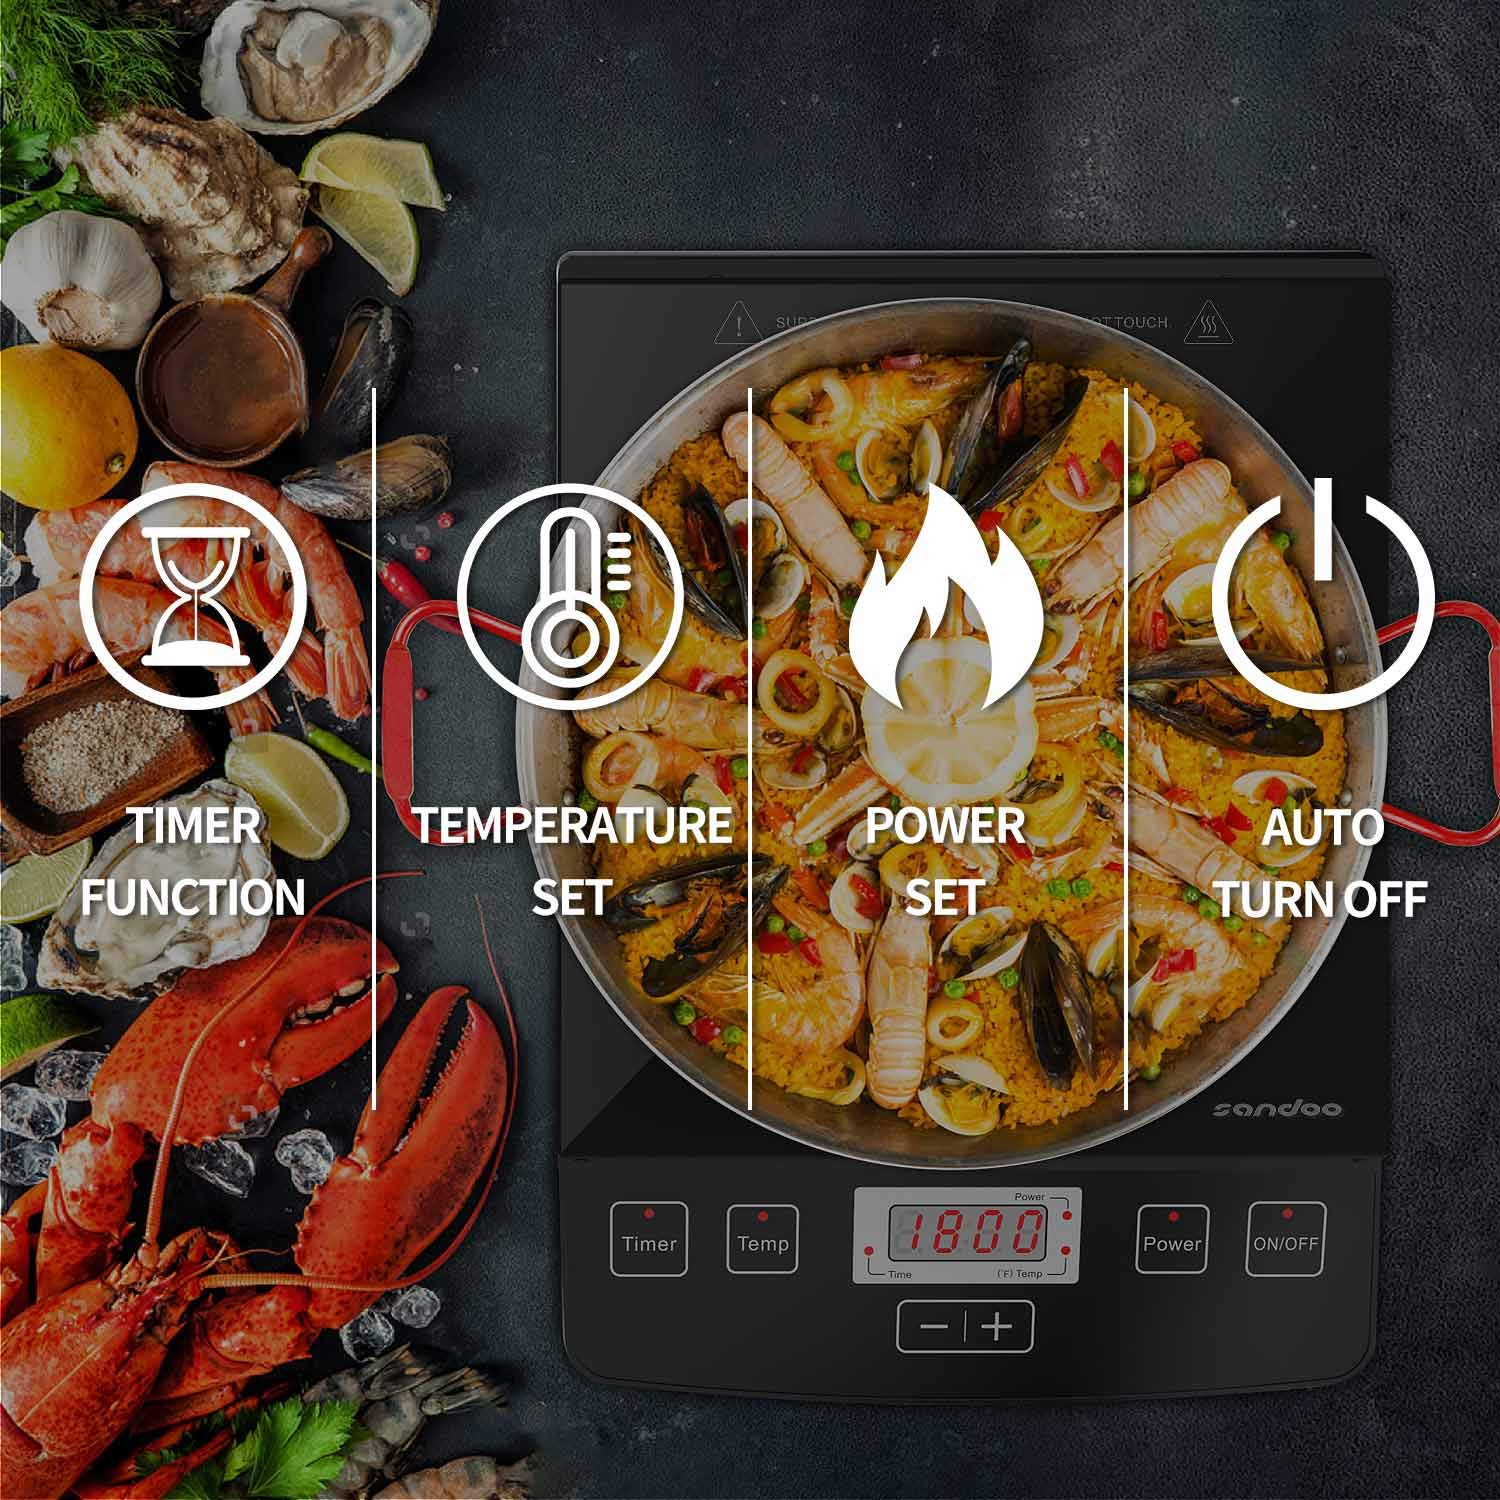 Sandoo HA1865 Induction Cooktop, 1800W Portable Light Weight Countertop Burner, Digital Electric Cooker Burner, with Timer 15 Temperature Power Setting, Suitable for Home Kitchen, RV, Apartment by Sandoo (Image #4)